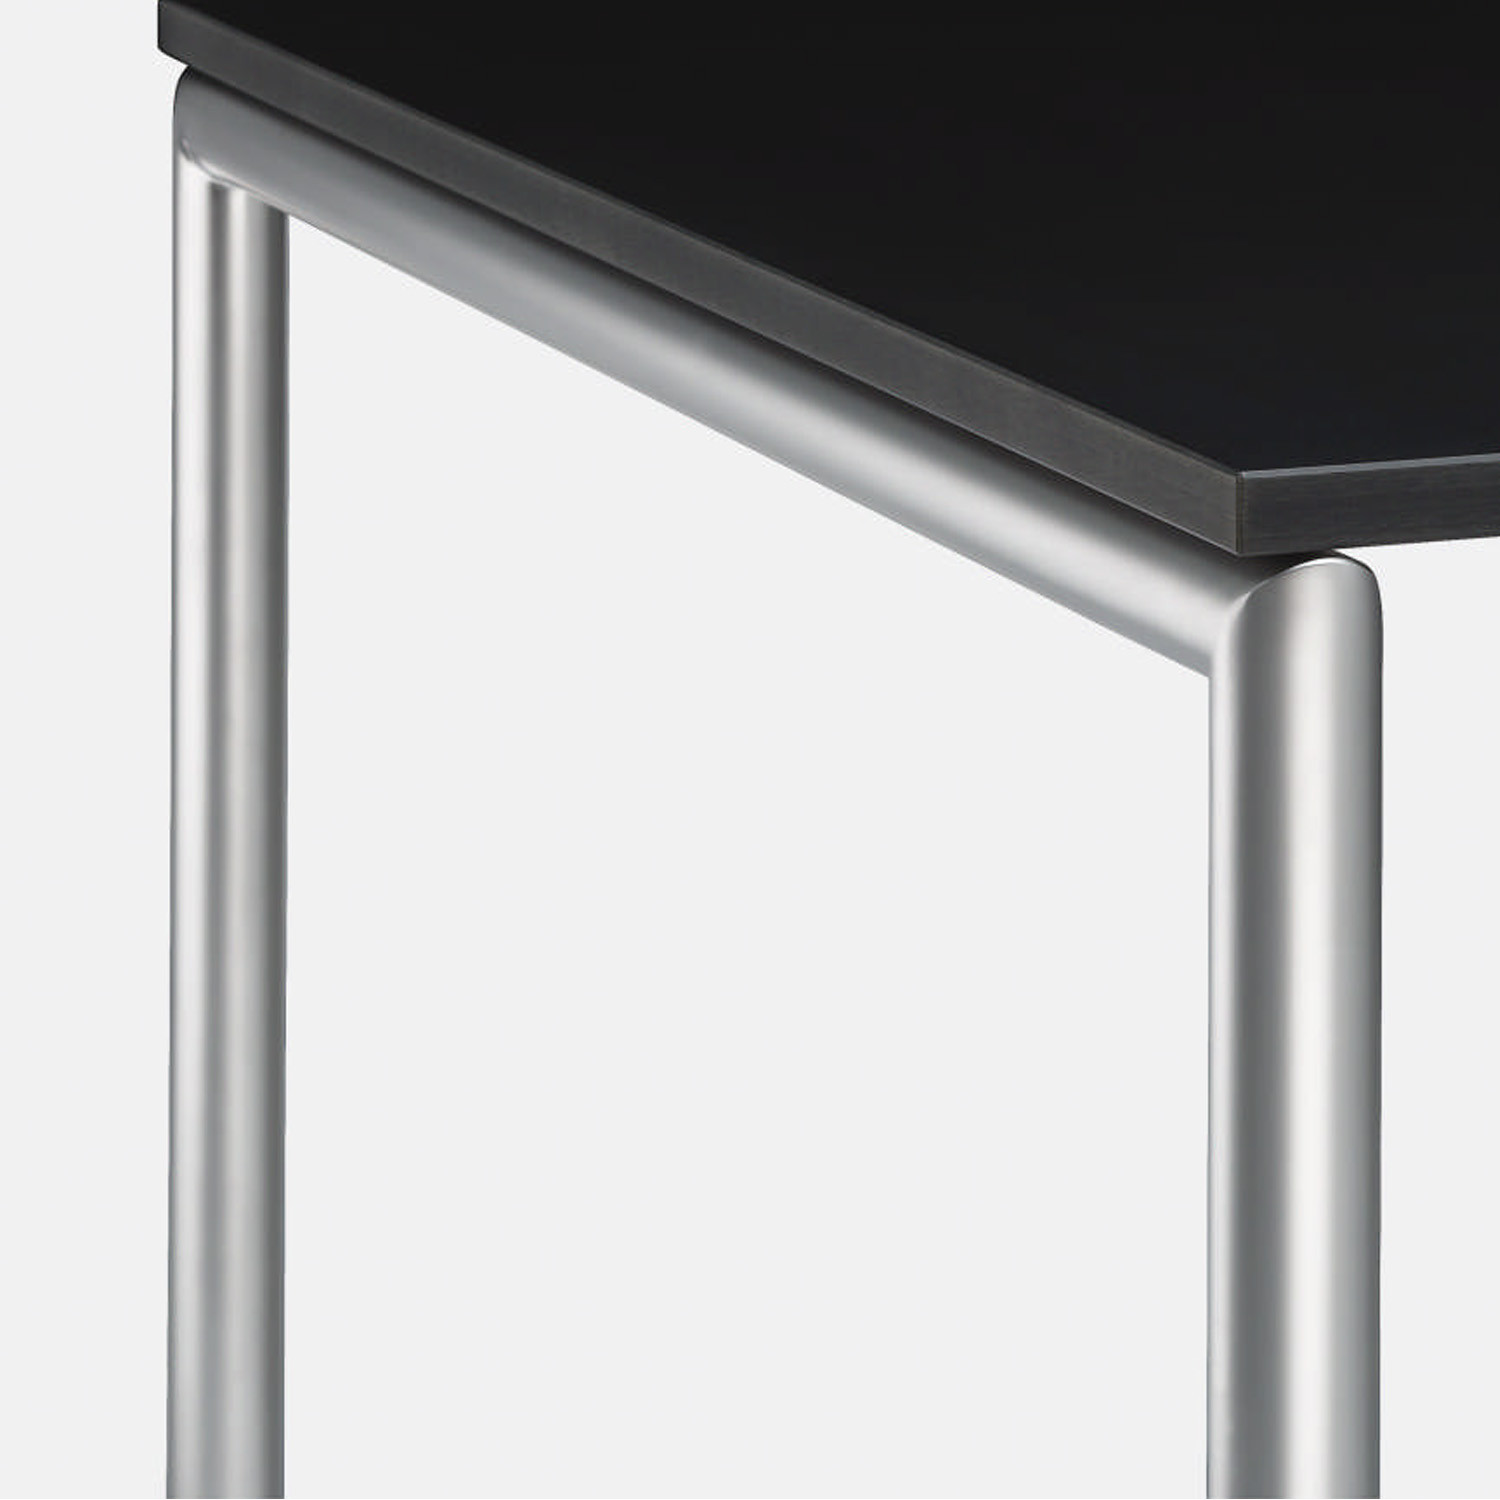 MilanoLight Table has a tubular section steel frame